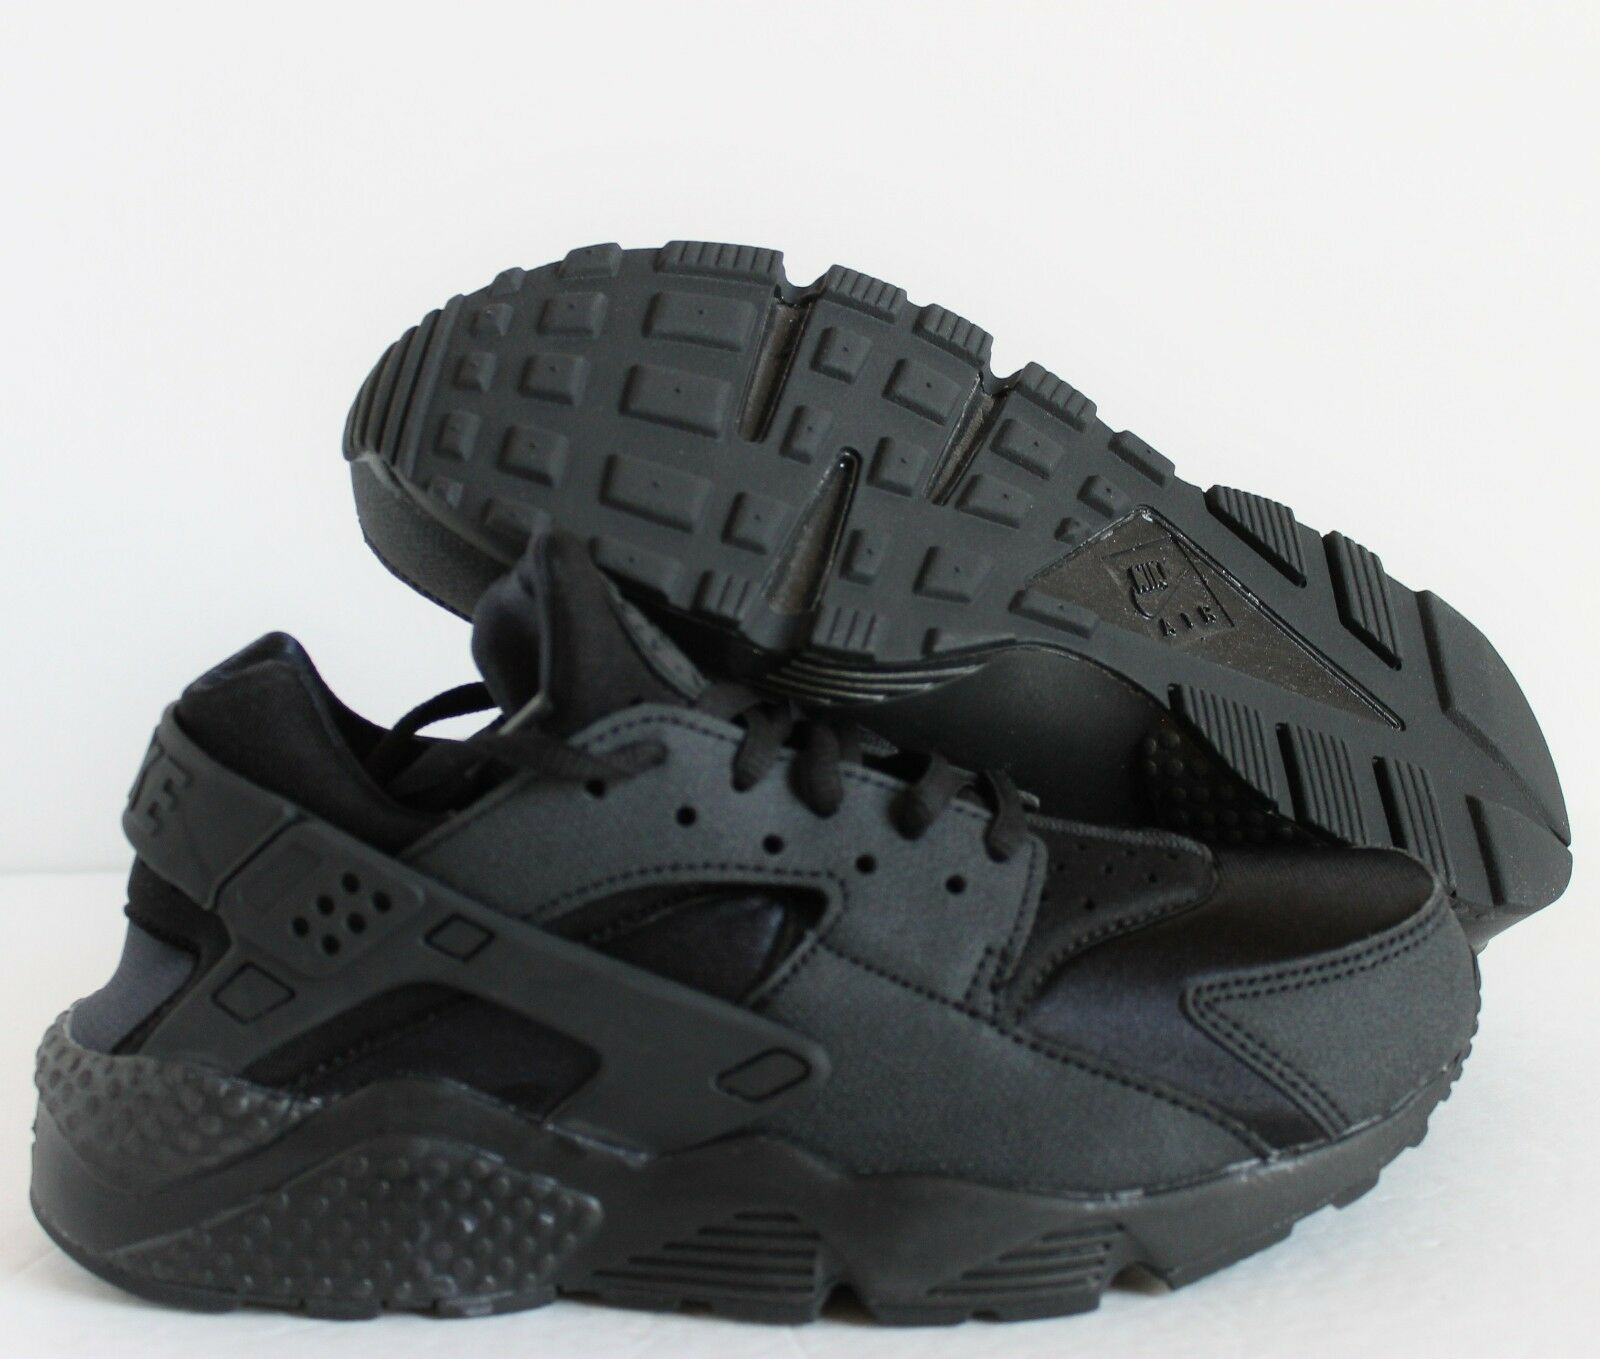 NIKE WOMEN AIR HUARACHE RUN BLACK-BLACK Price reduction The most popular shoes for men and women